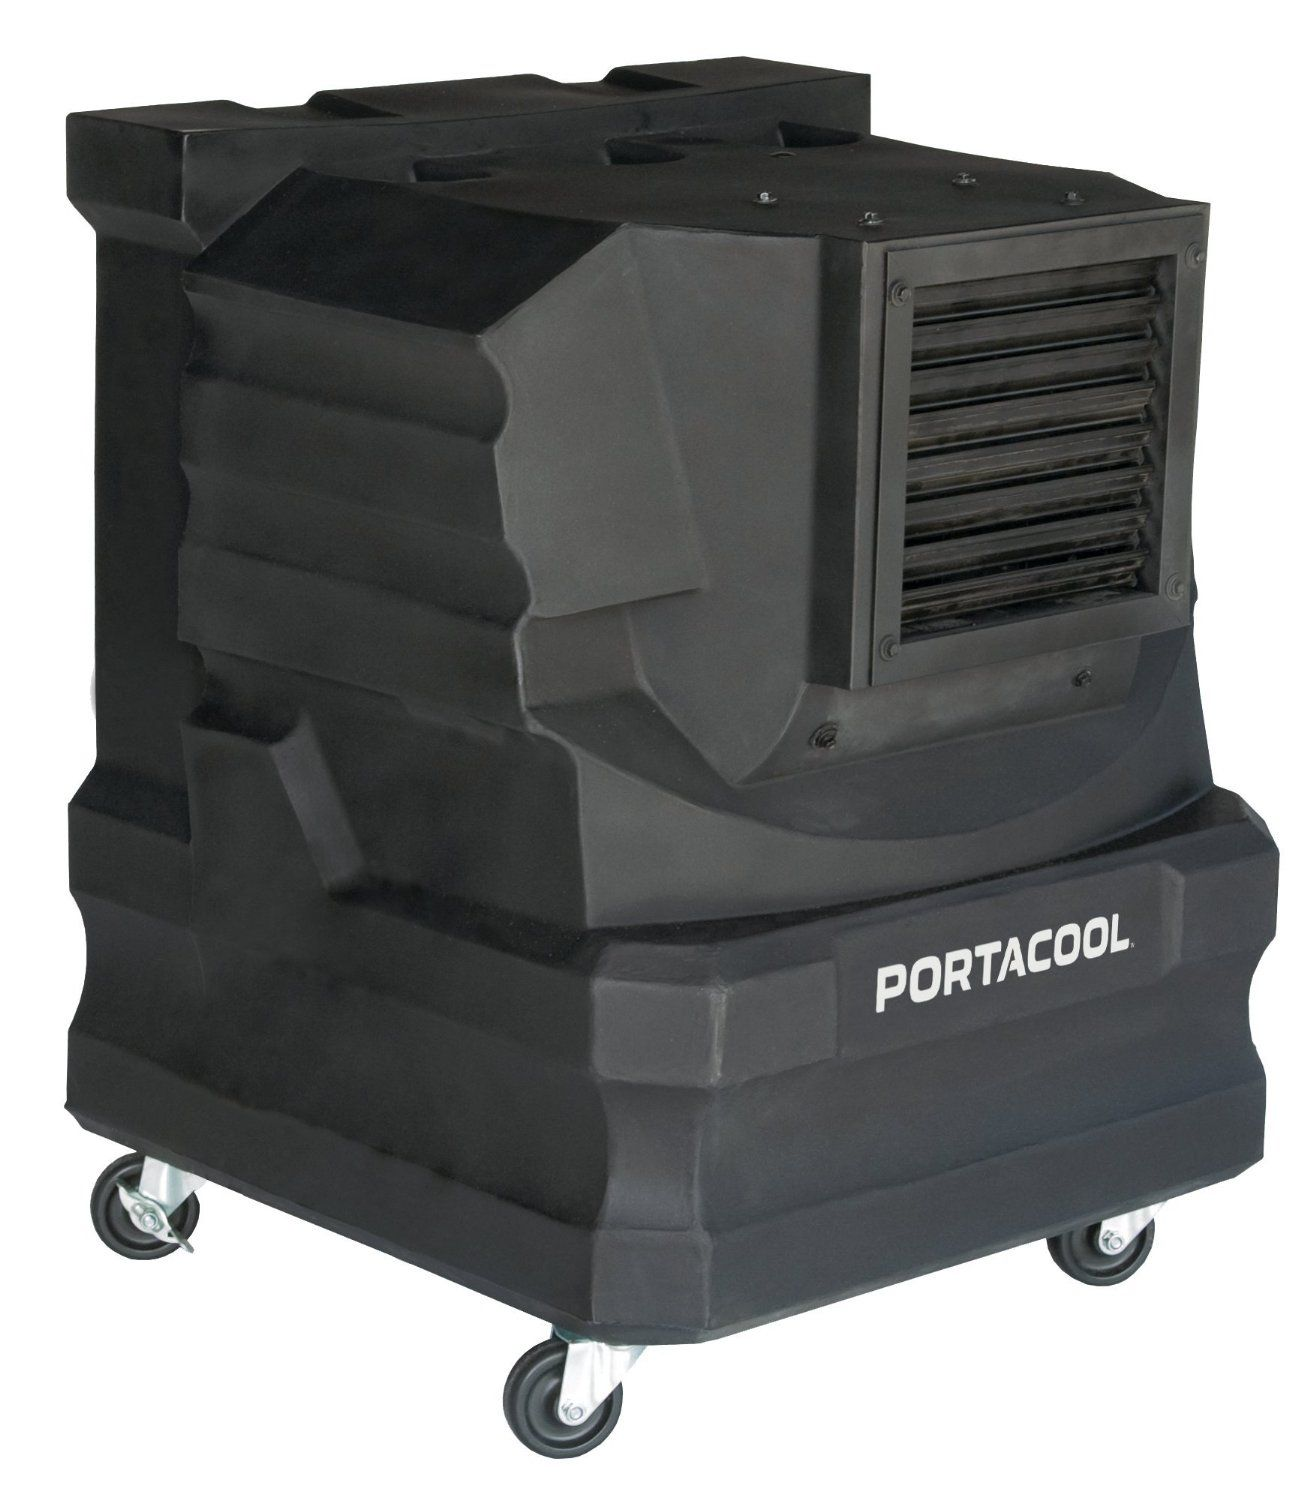 Portacool Evaporative cooler, Air conditioner